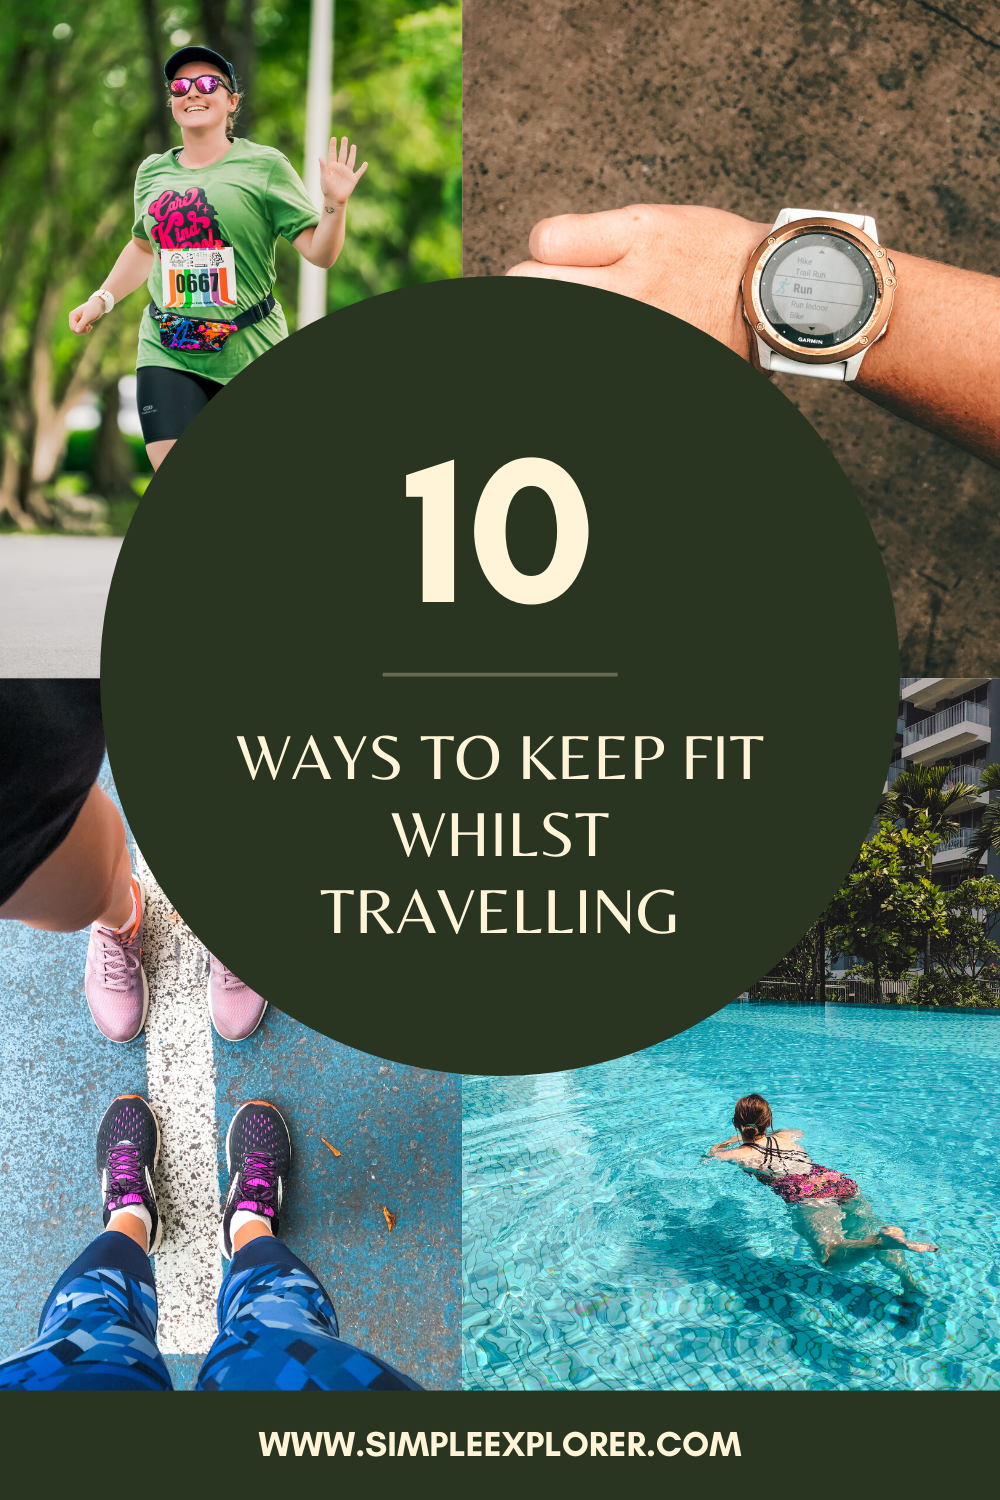 10 ways to stay fit whilst travelling